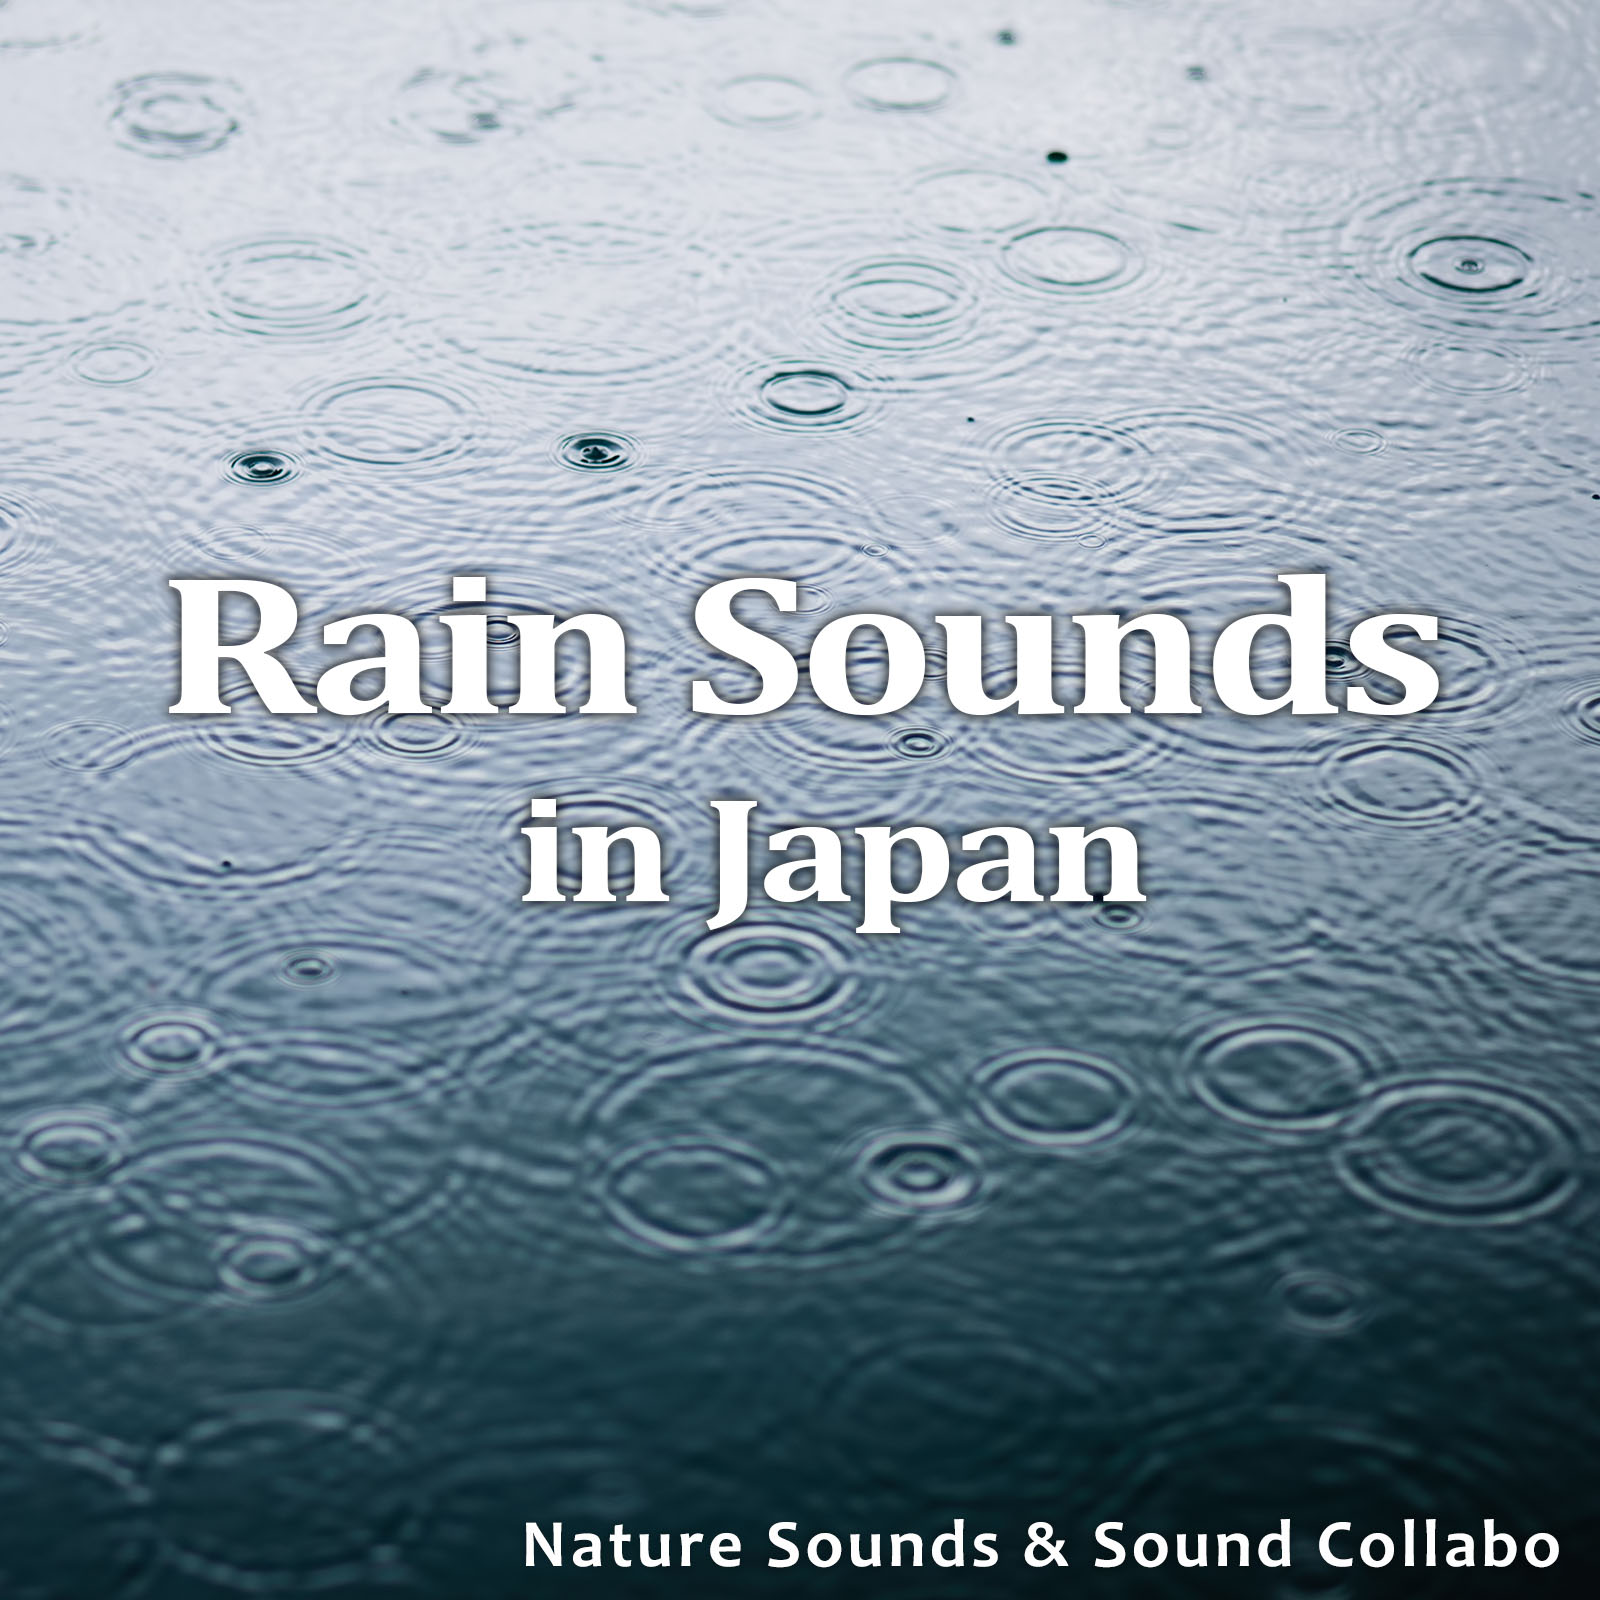 Image of Rain Sounds in Japan